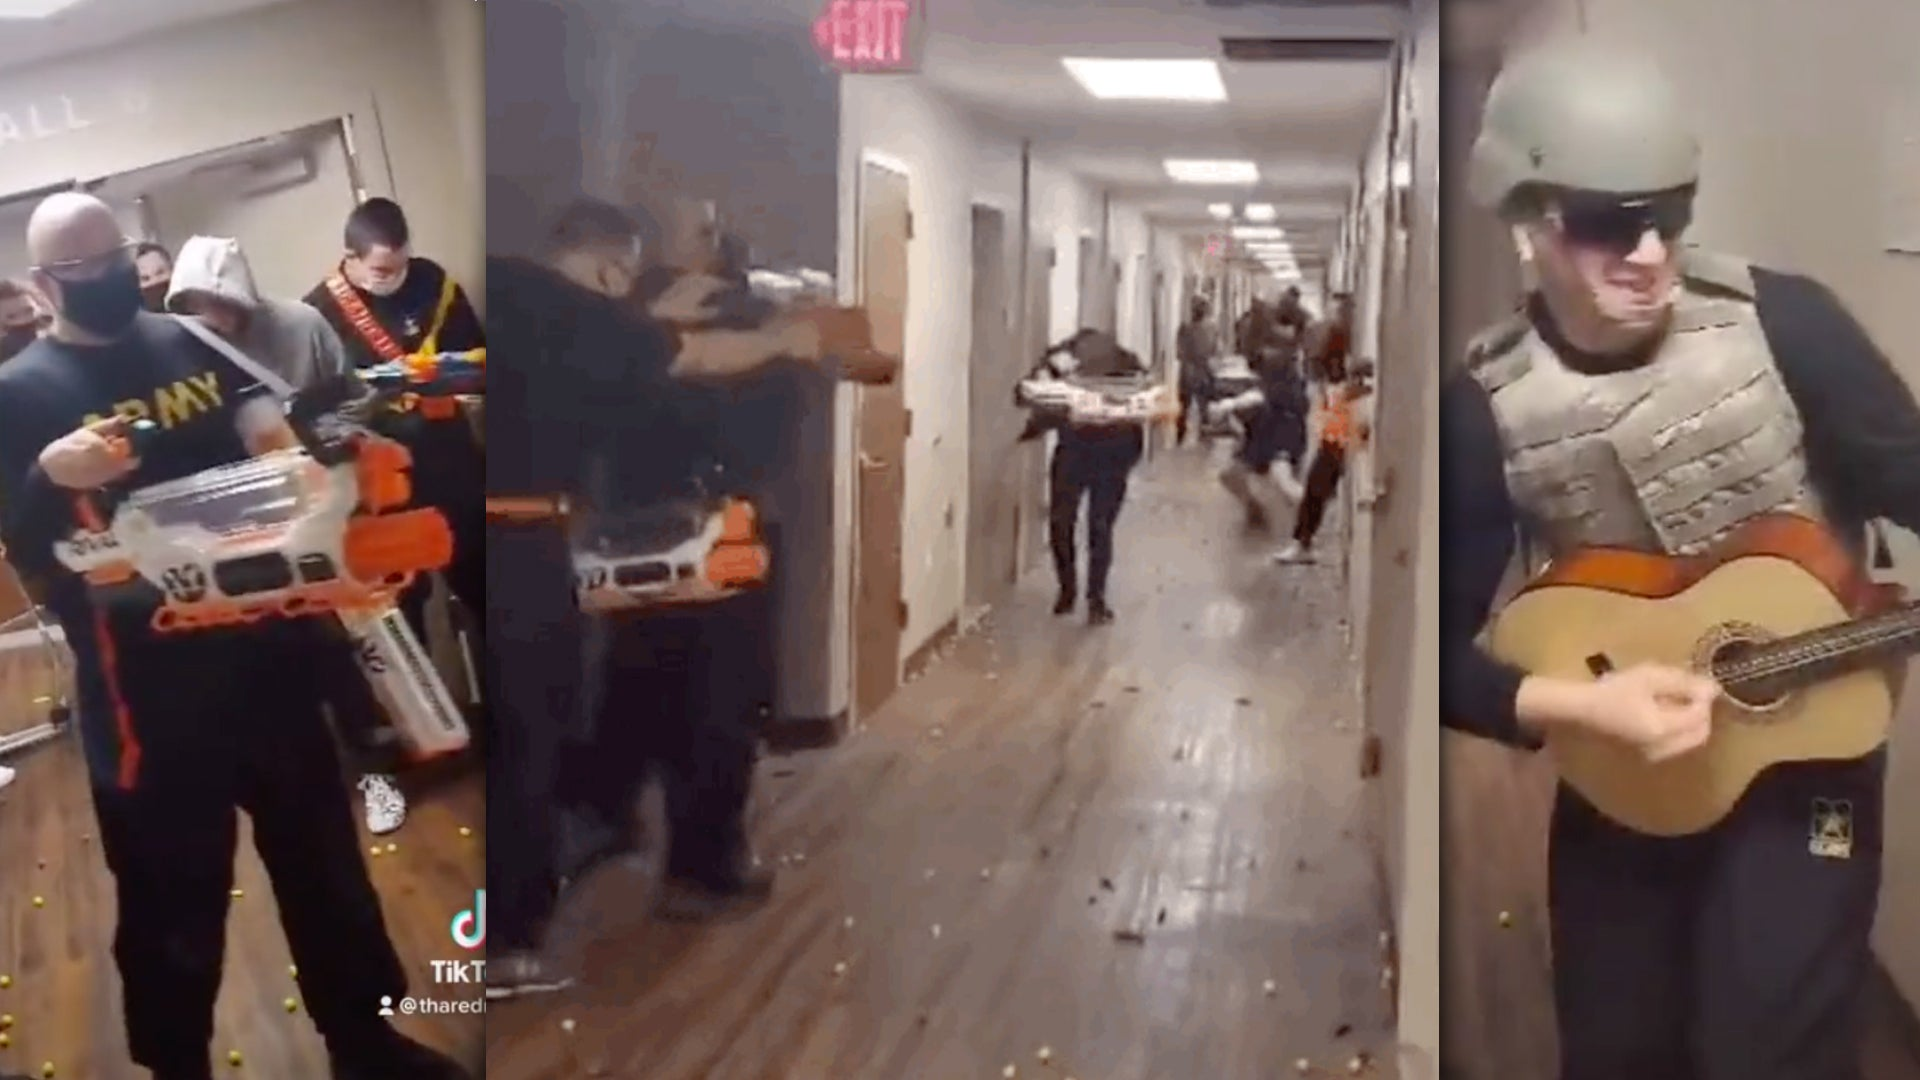 This may be the greatest barracks Nerf battle we've ever seen